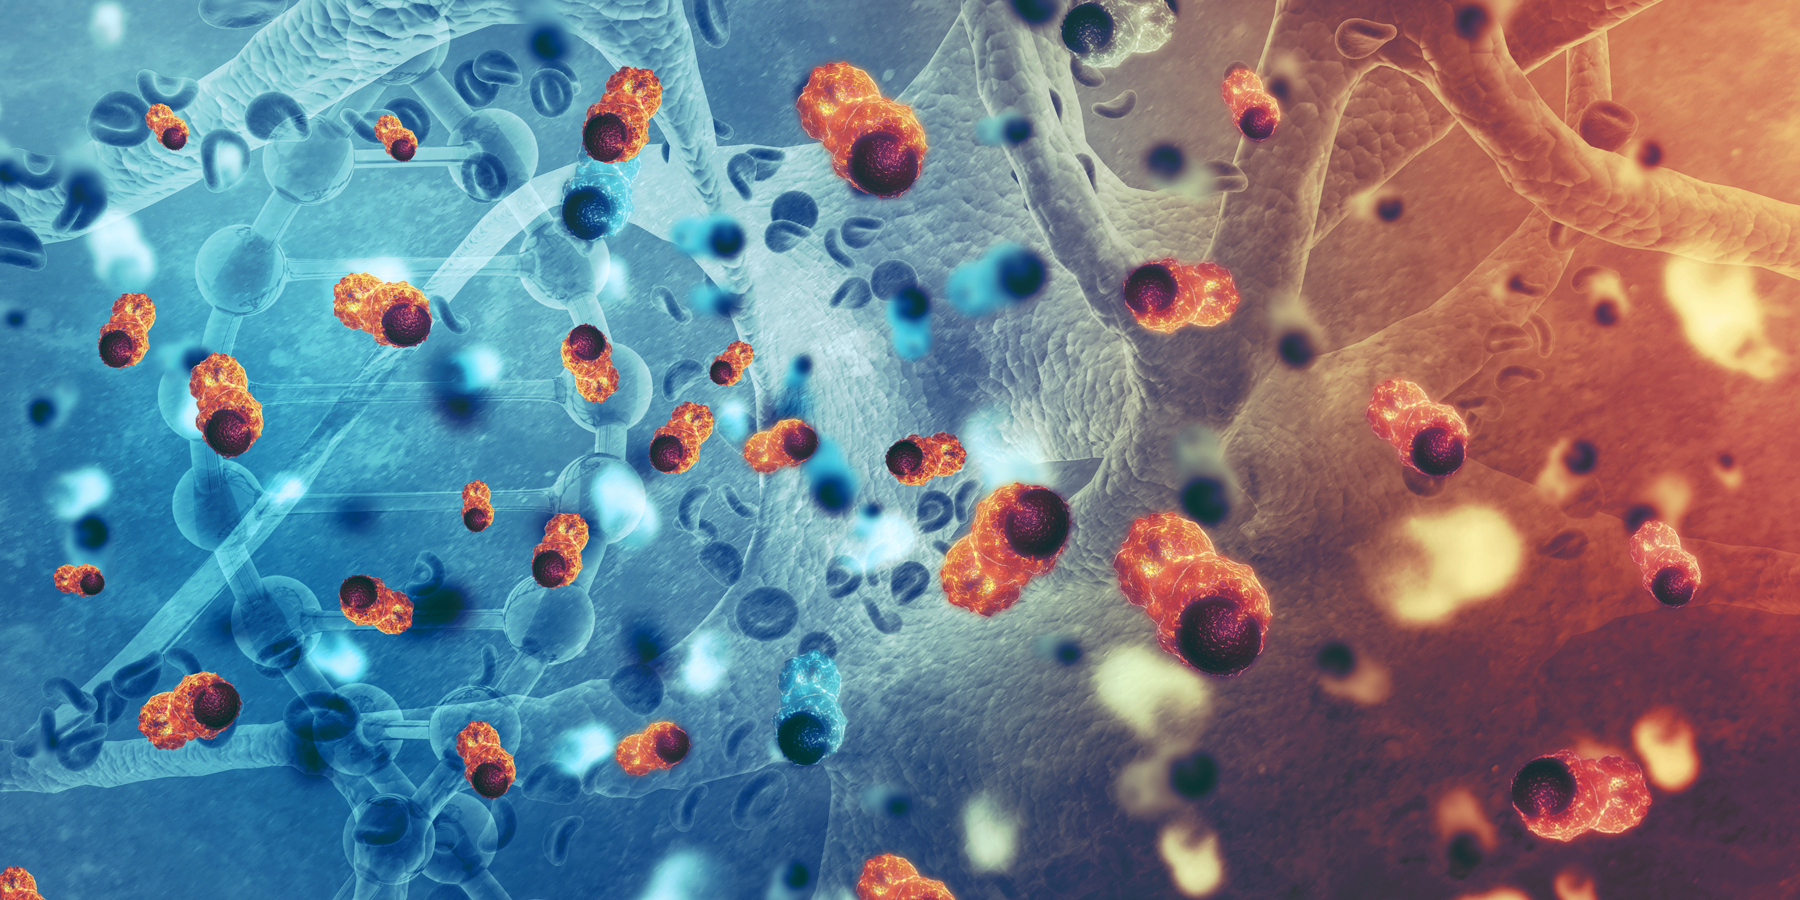 Increased Rate of Infections May Indicate Future Cancer Diagnosis